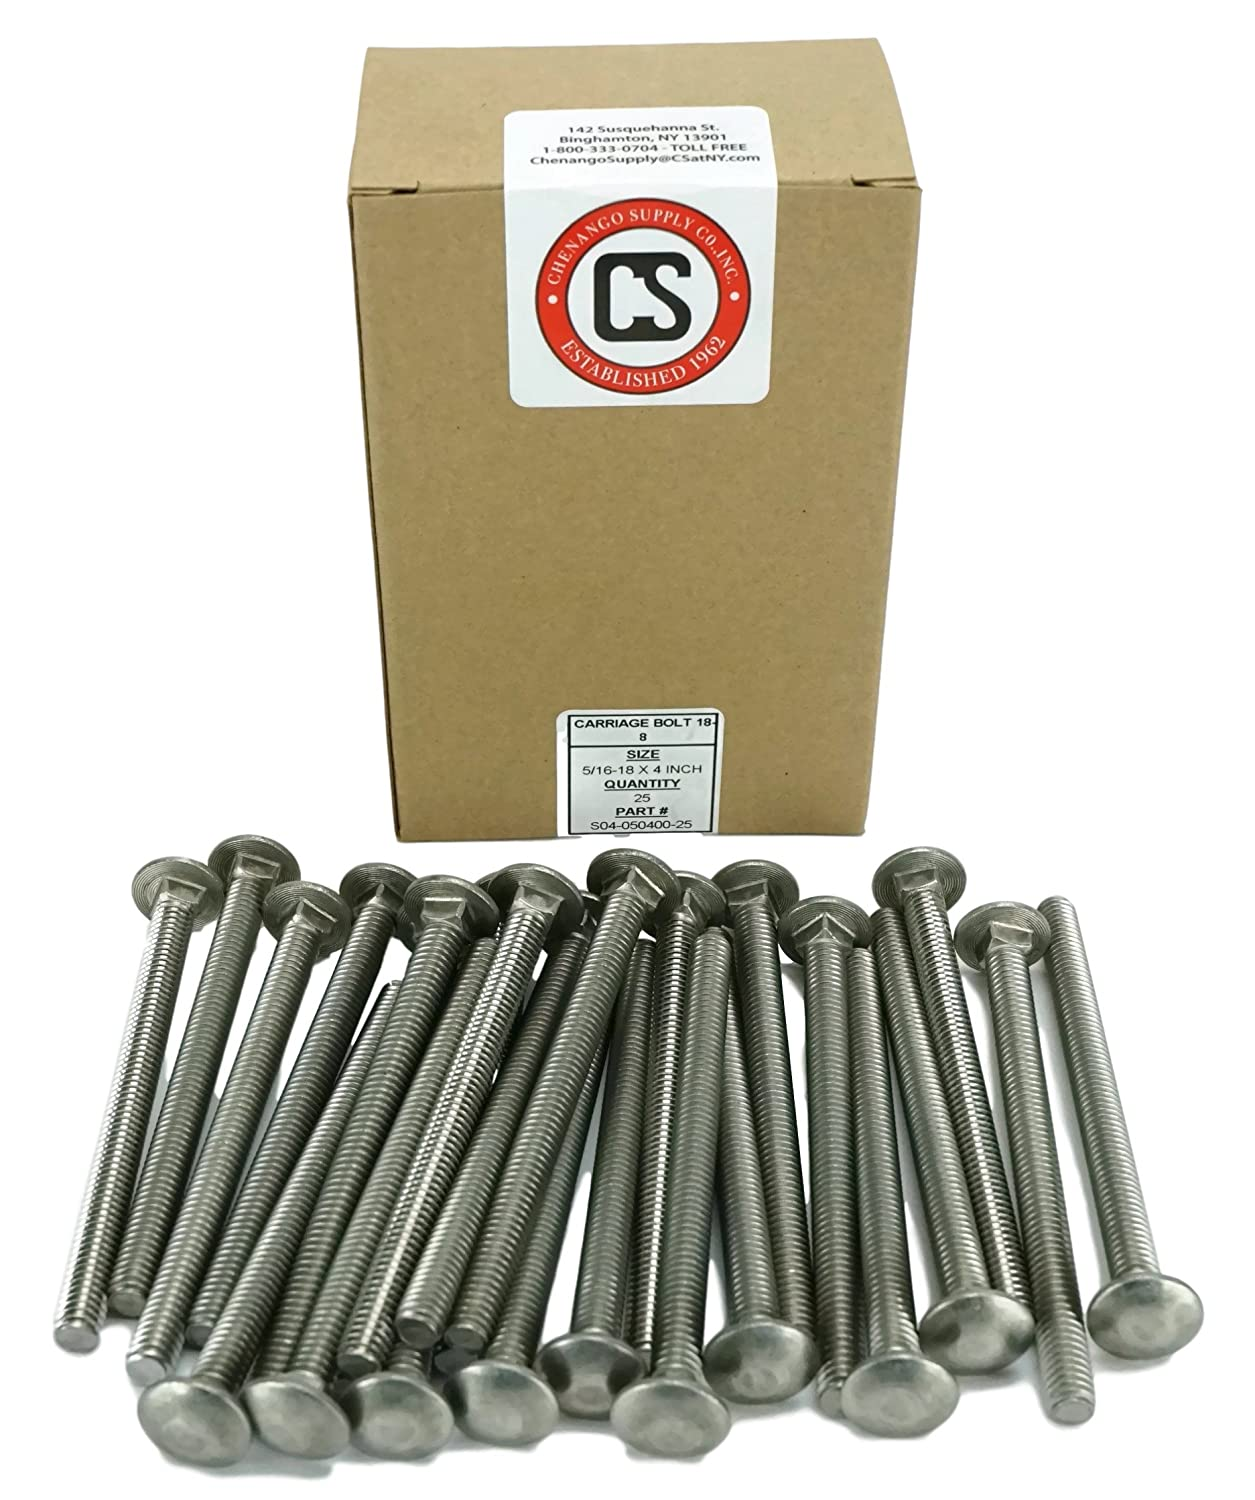 18-8 Stainless Steel,25 Pieces 5//16-18x3 Stainless 5//16-18 x 3 Carriage Bolt 1 to 5 Lengths Available in Listing